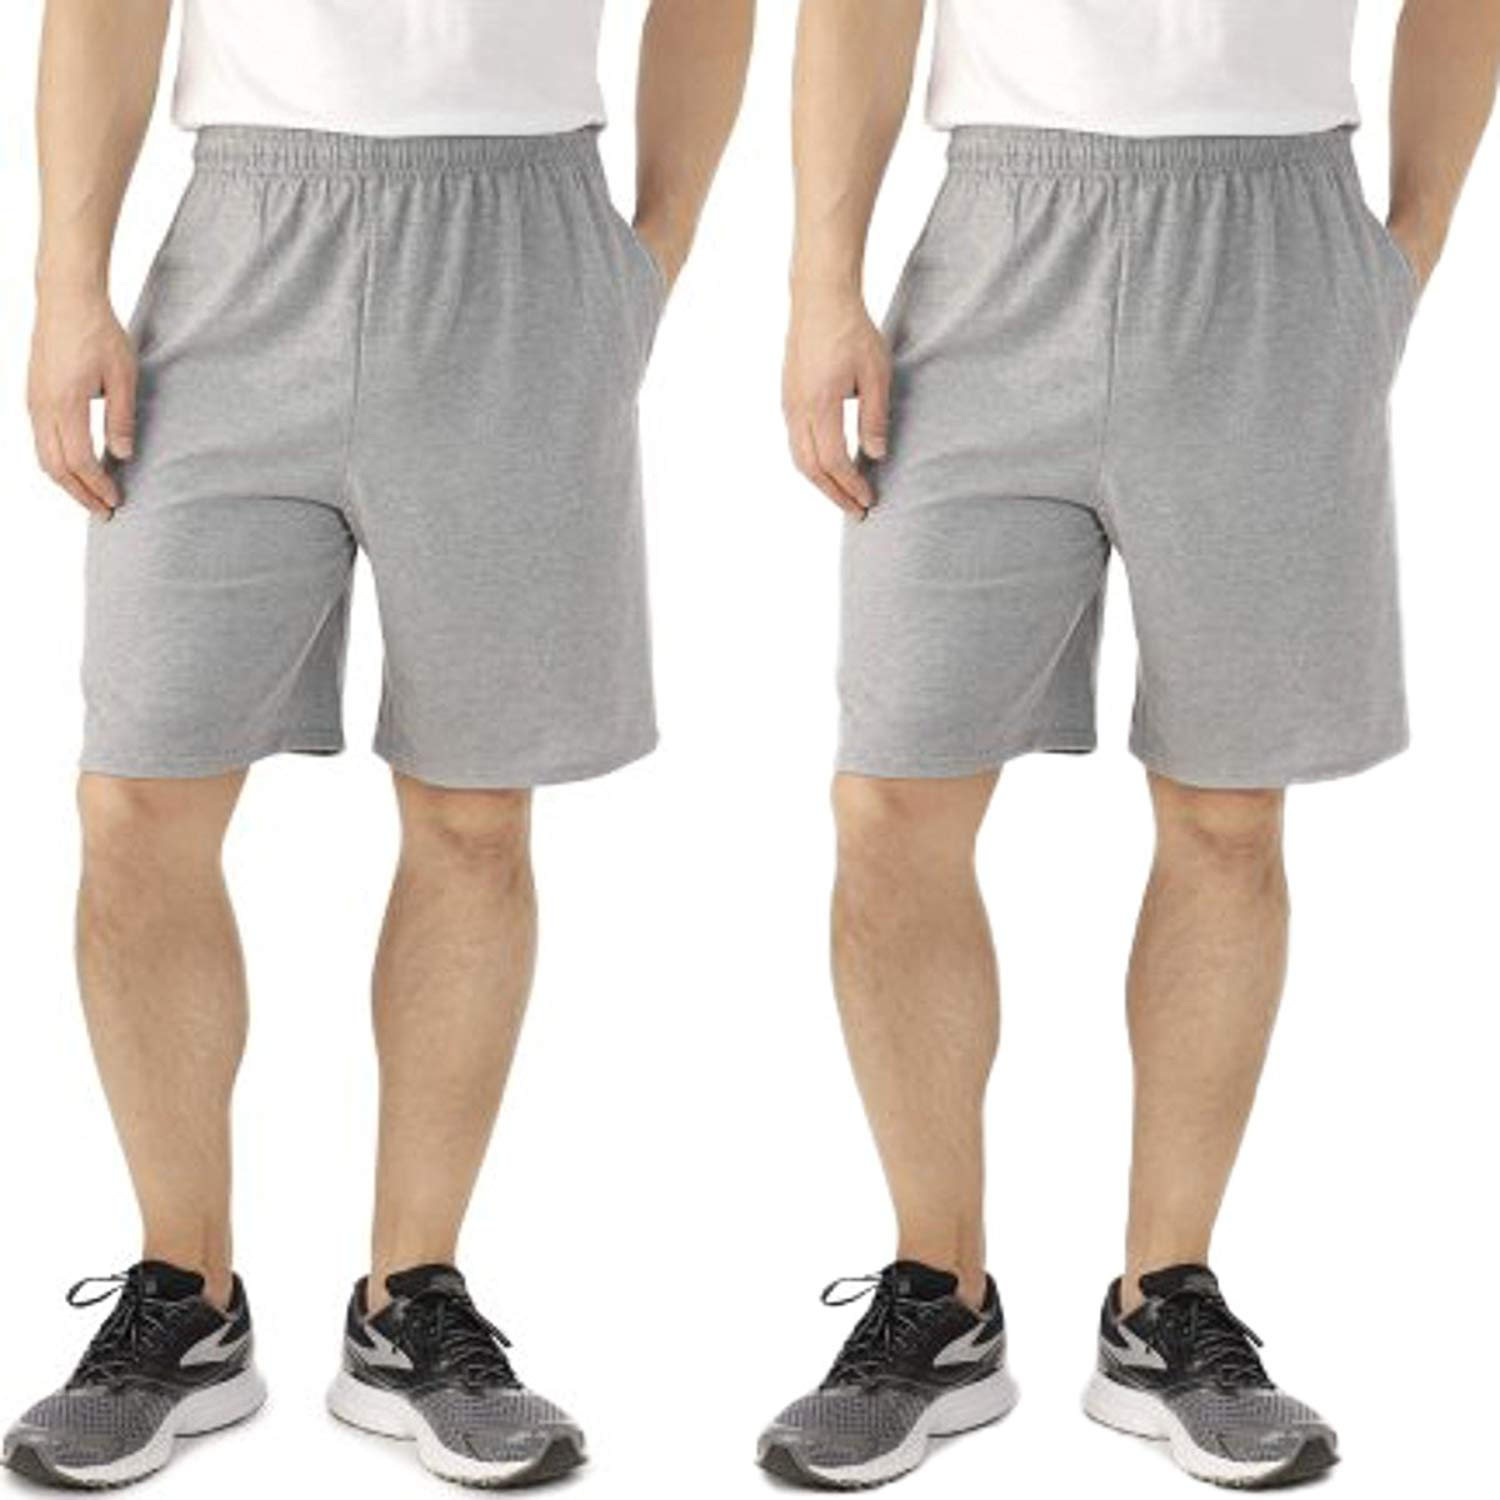 f9e95085e45 Get Quotations · Fruit of the Loom 2 Pack Tagless Mens Shorts with Pockets  9 inch Inseam Athletic Cotton